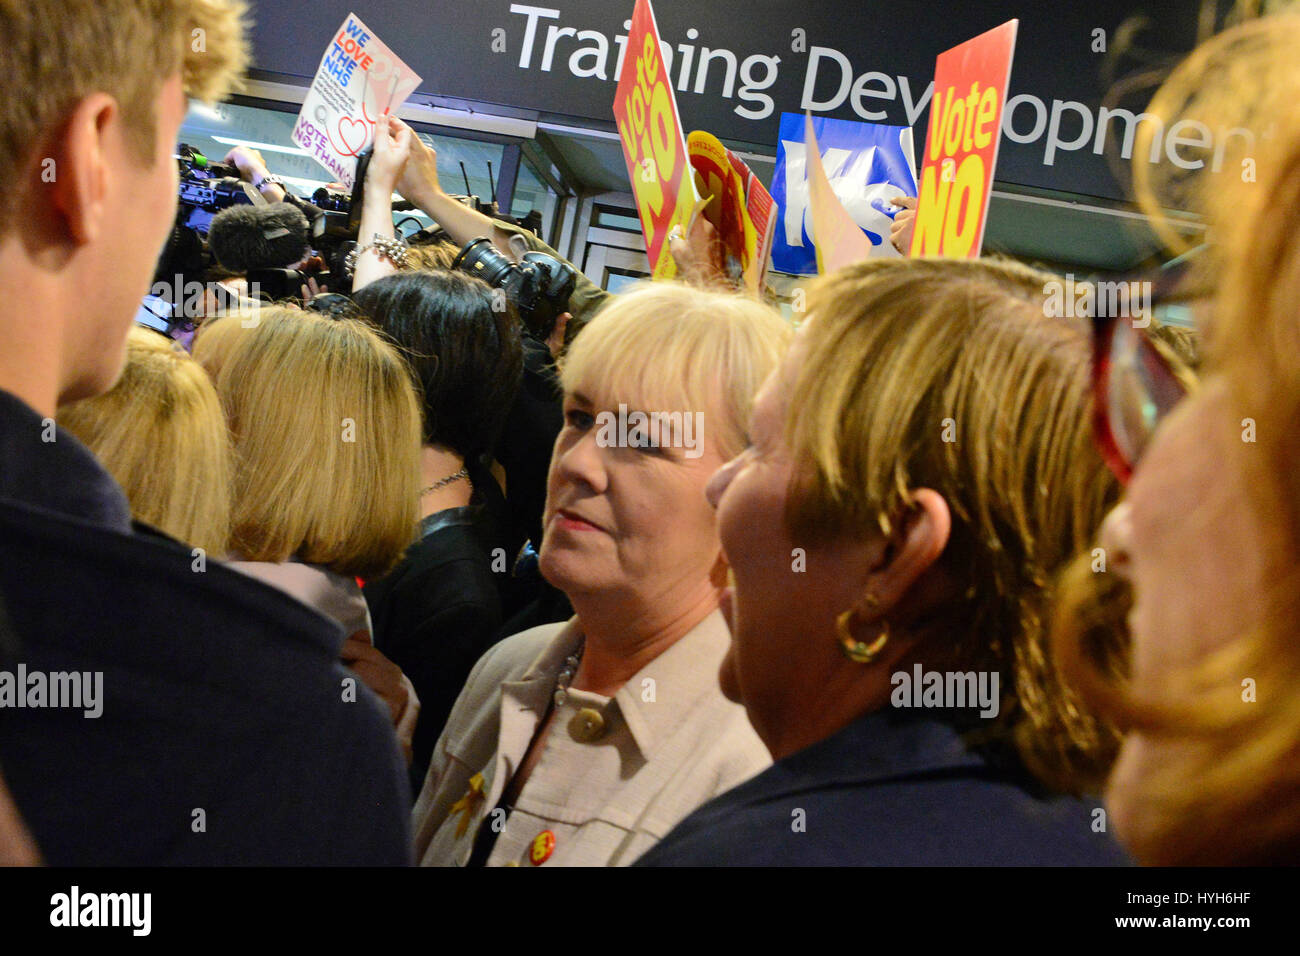 Scottish Labour leader Johann Lamont (C) in the midst of a crowd of shoppers, supporters, and media surrounding - Stock Image